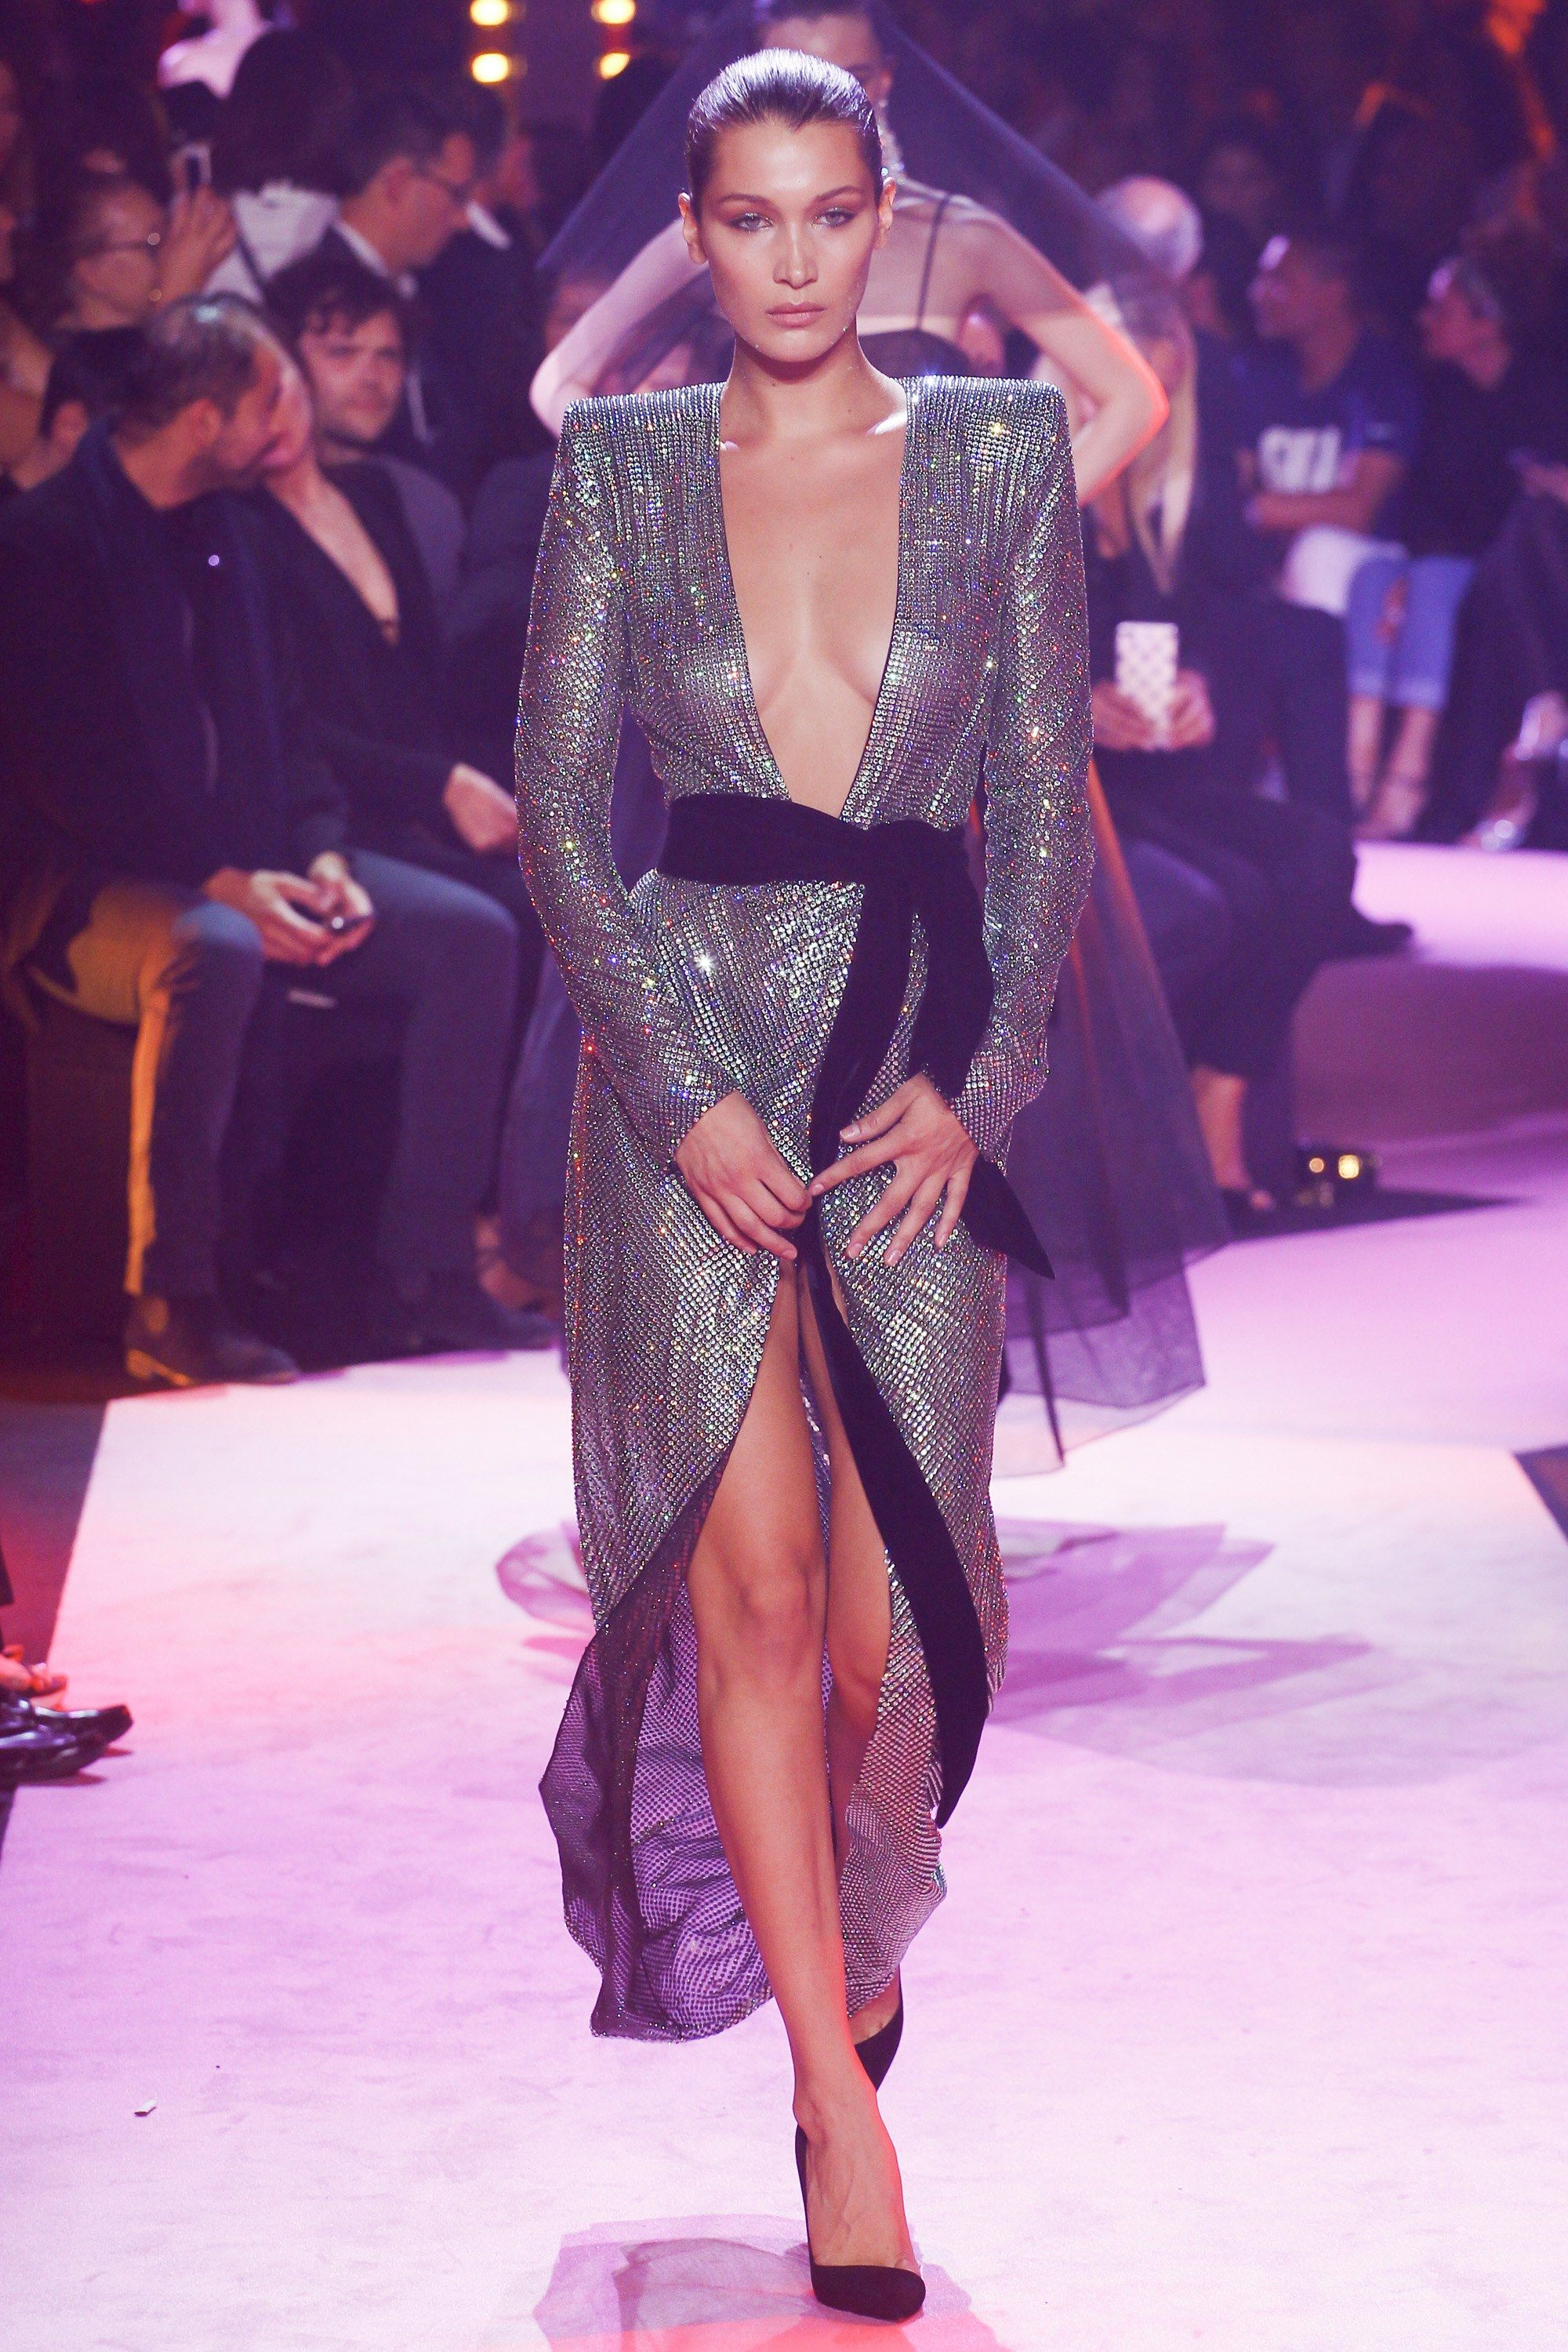 cb5de5b6b9211 See the complete Alexandre Vauthier Fall 2017 Couture collection.